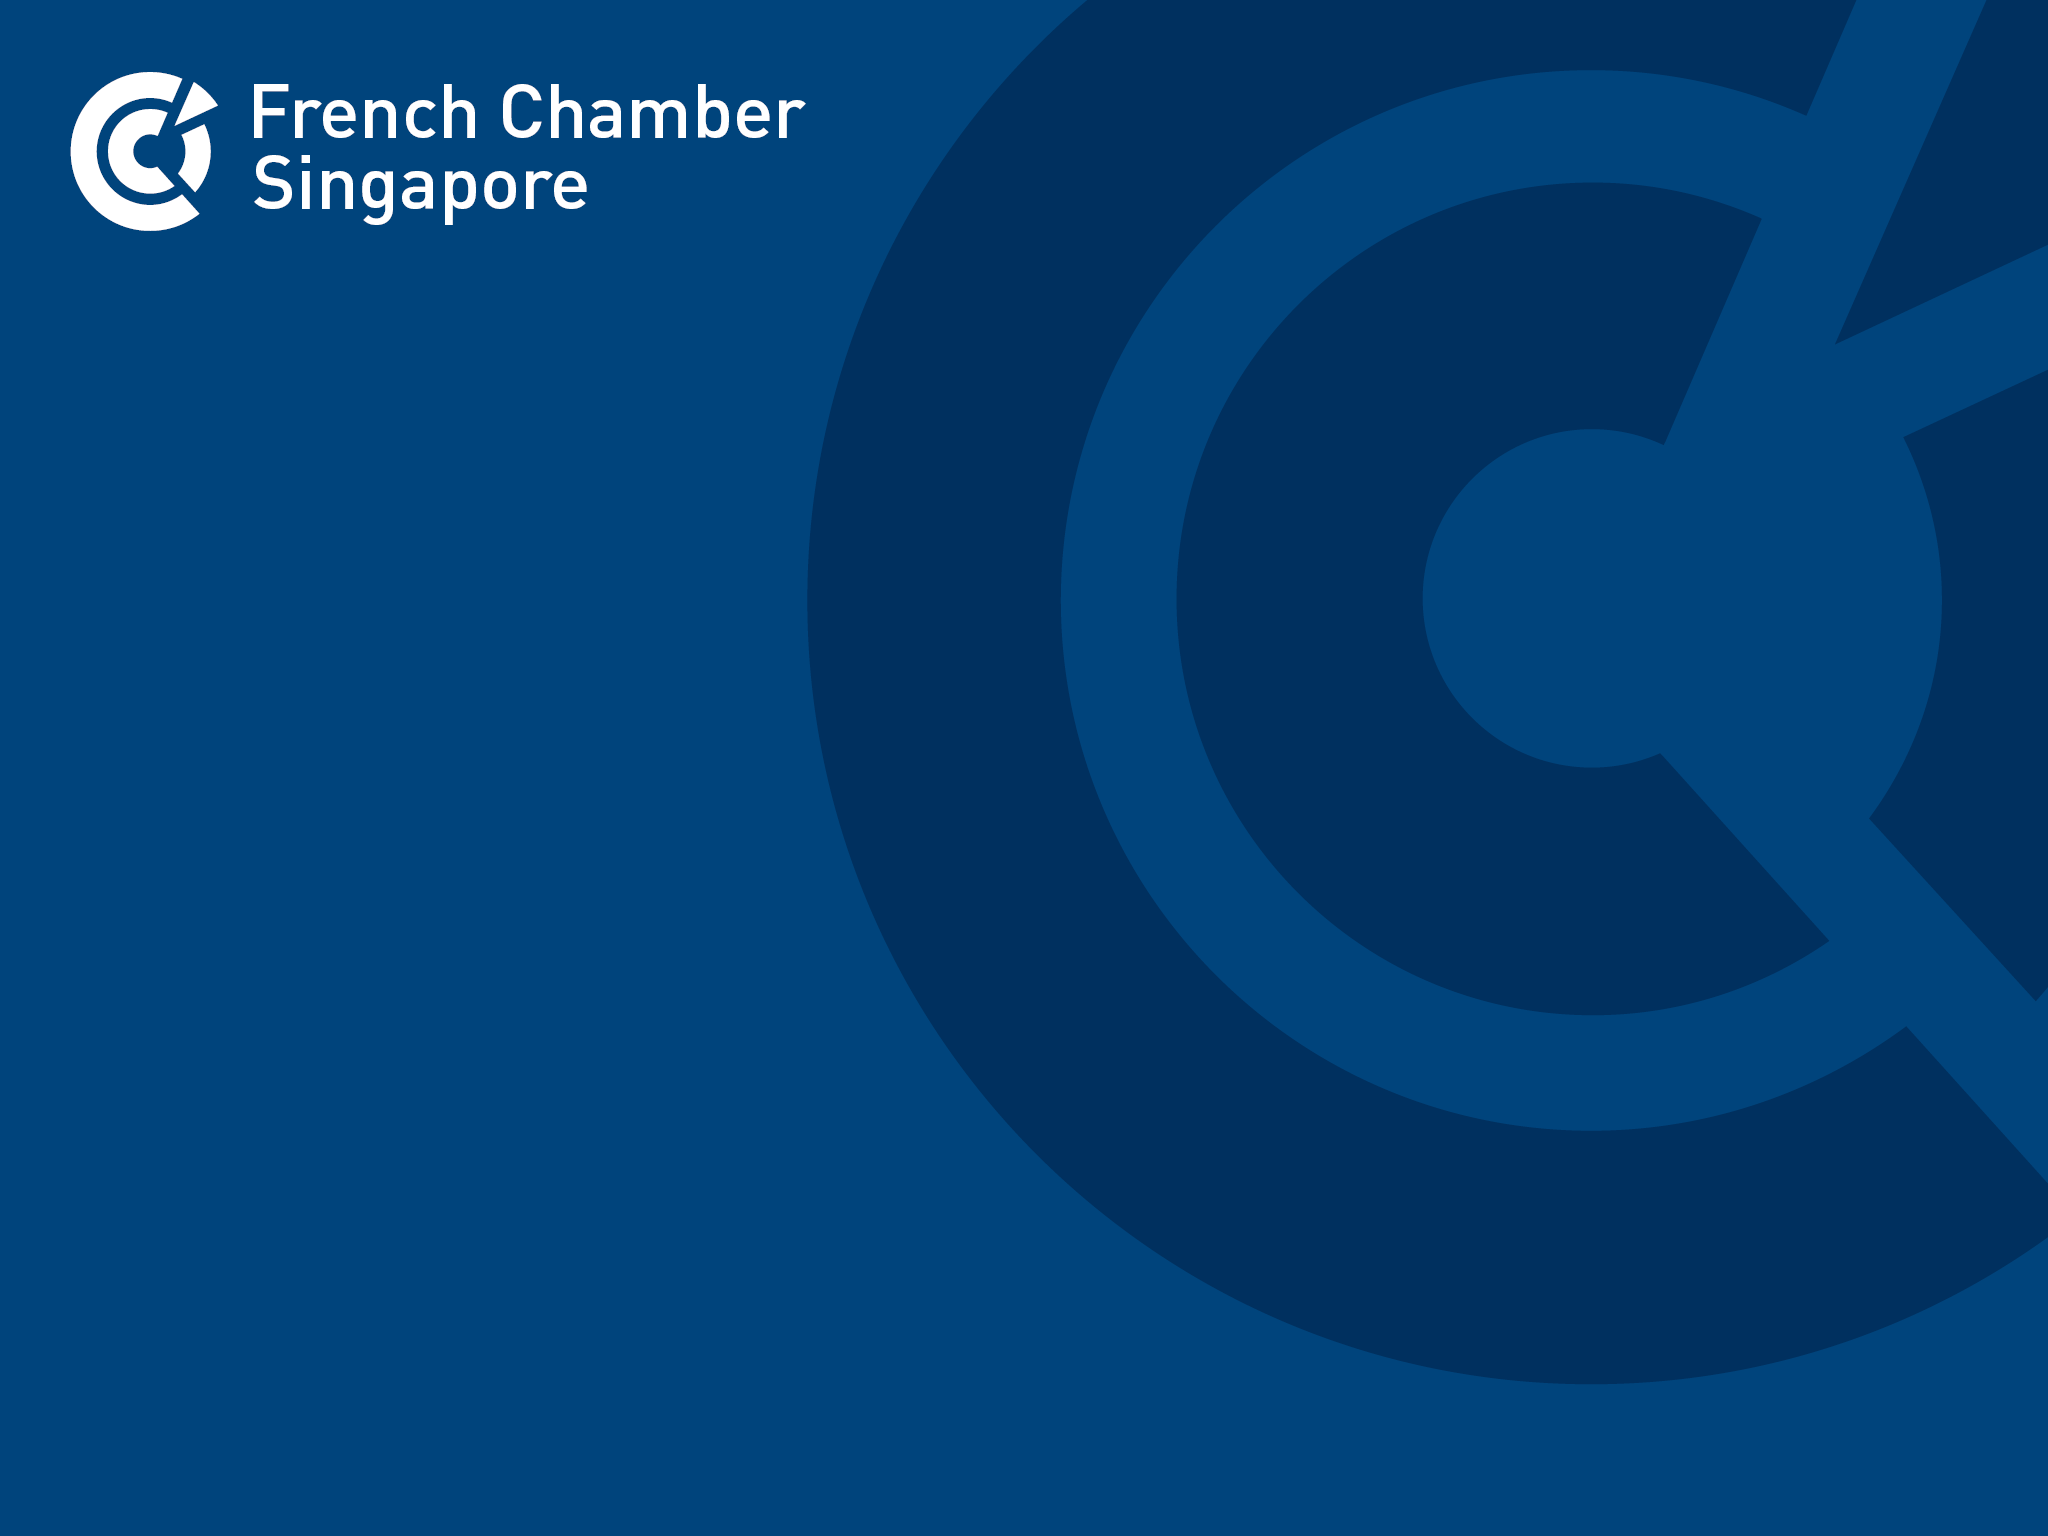 French Chamber Singapore - An extensive portfolio of initiatives to boost the development of French businesses in Singapore and South-East Asia.